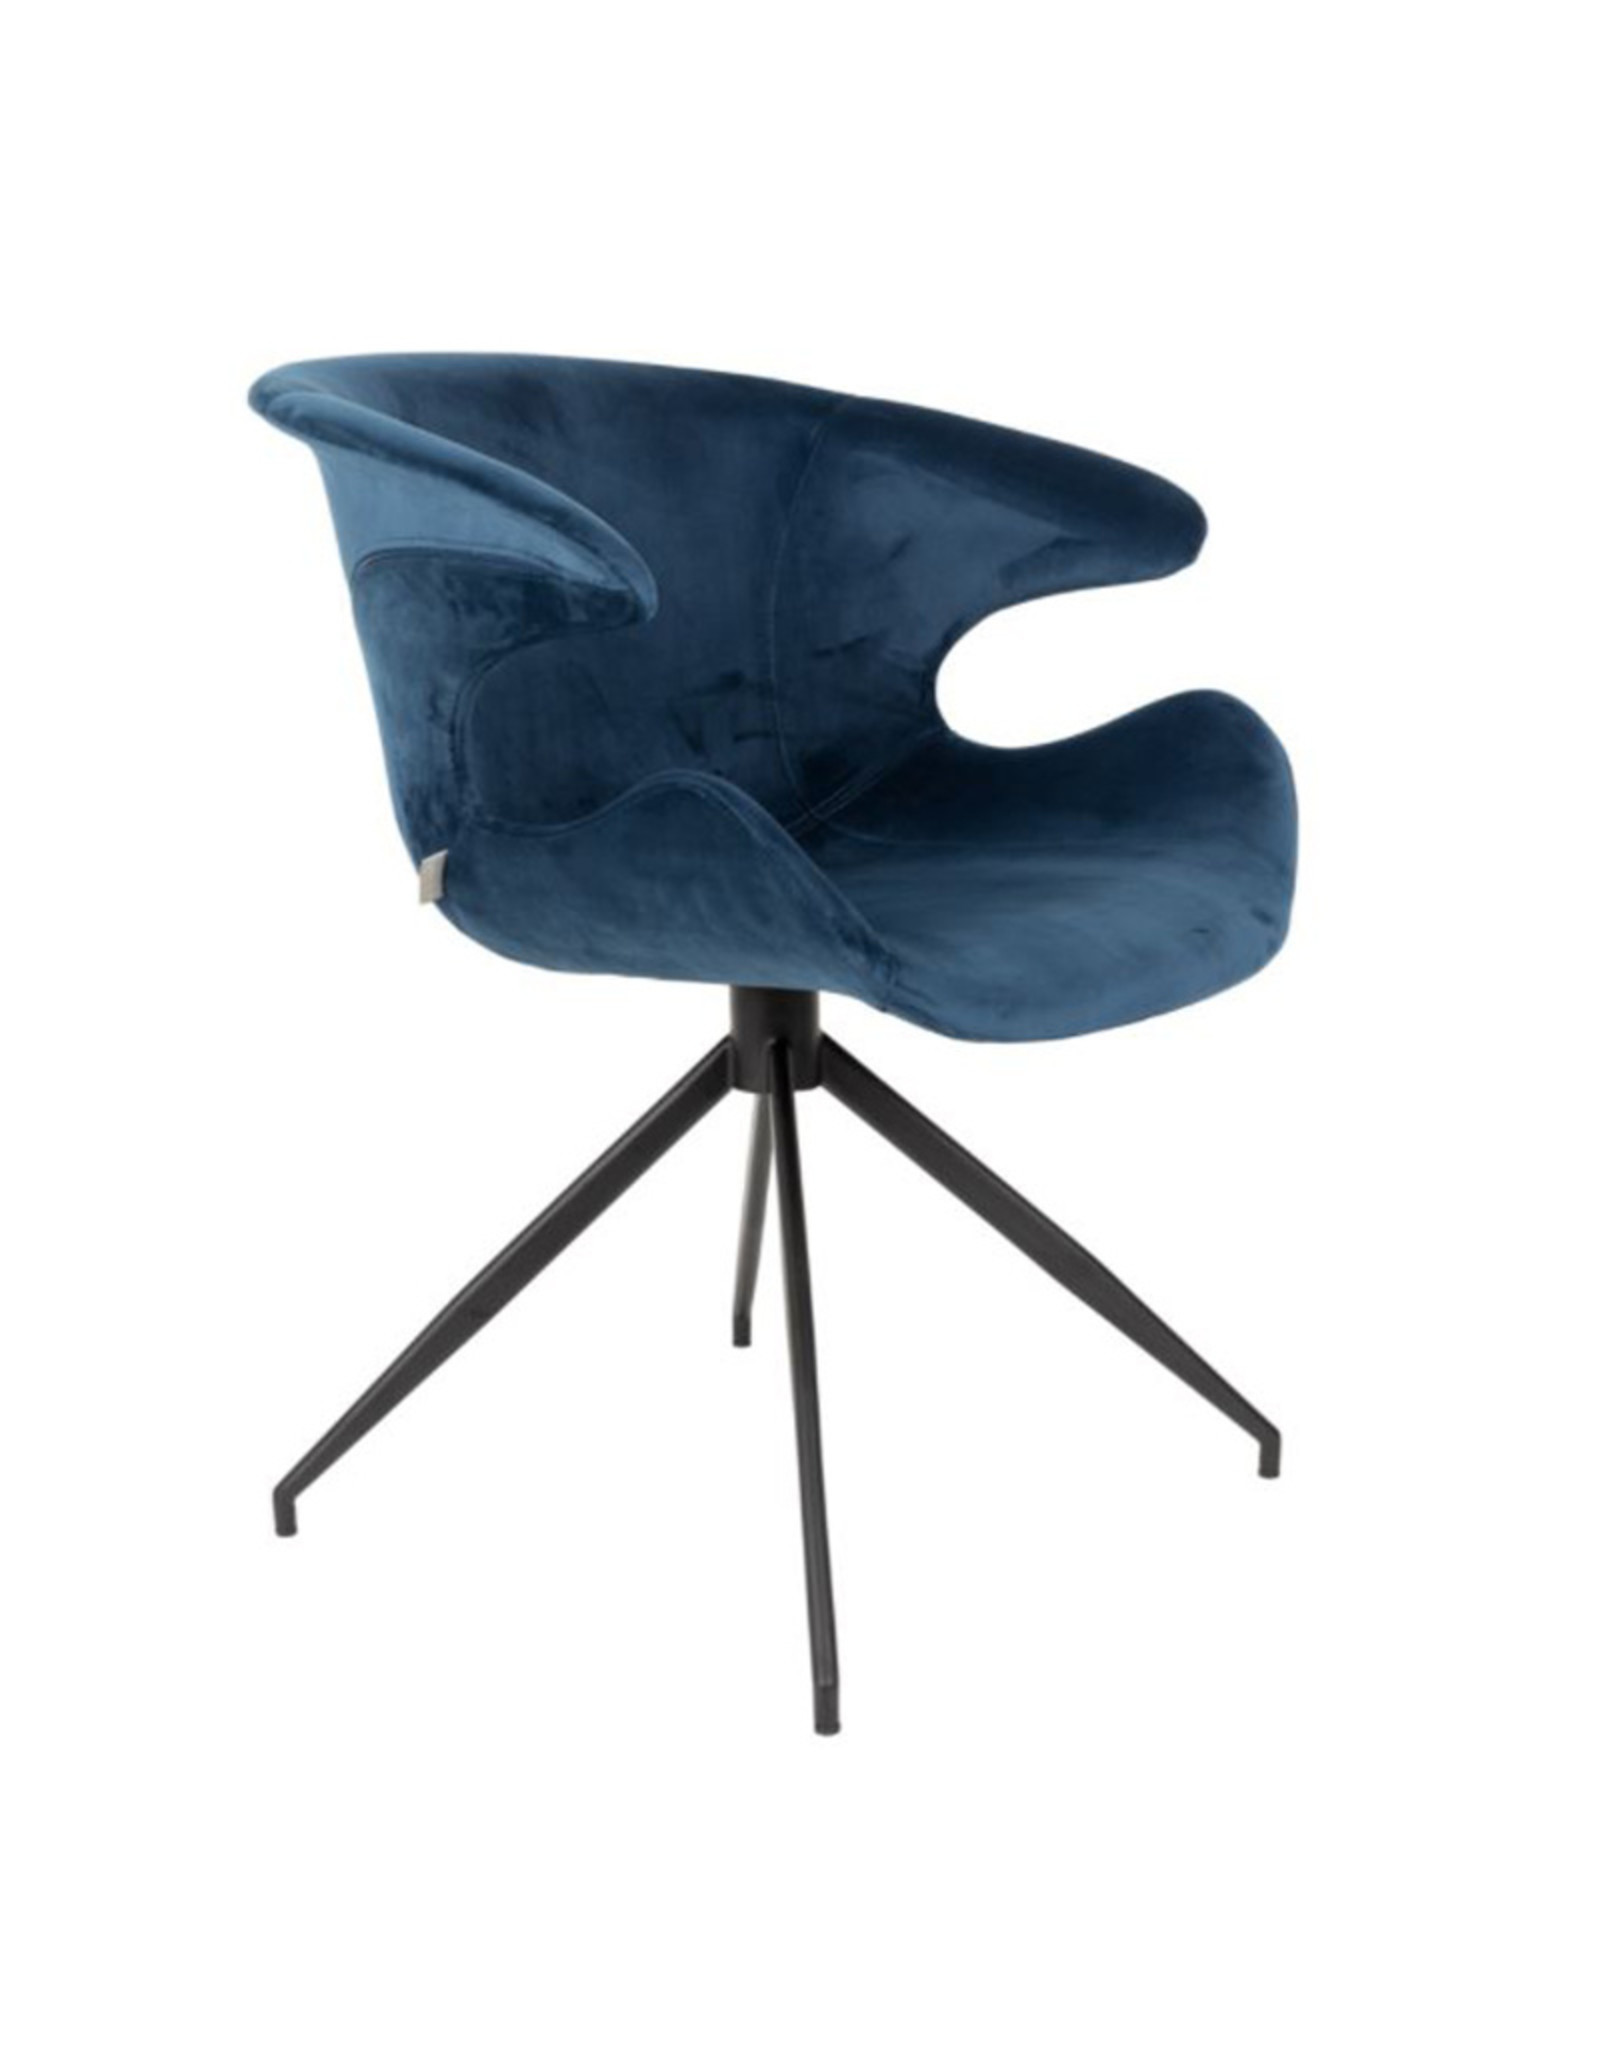 ZUIVER BV Mia Armchair (set of 2)